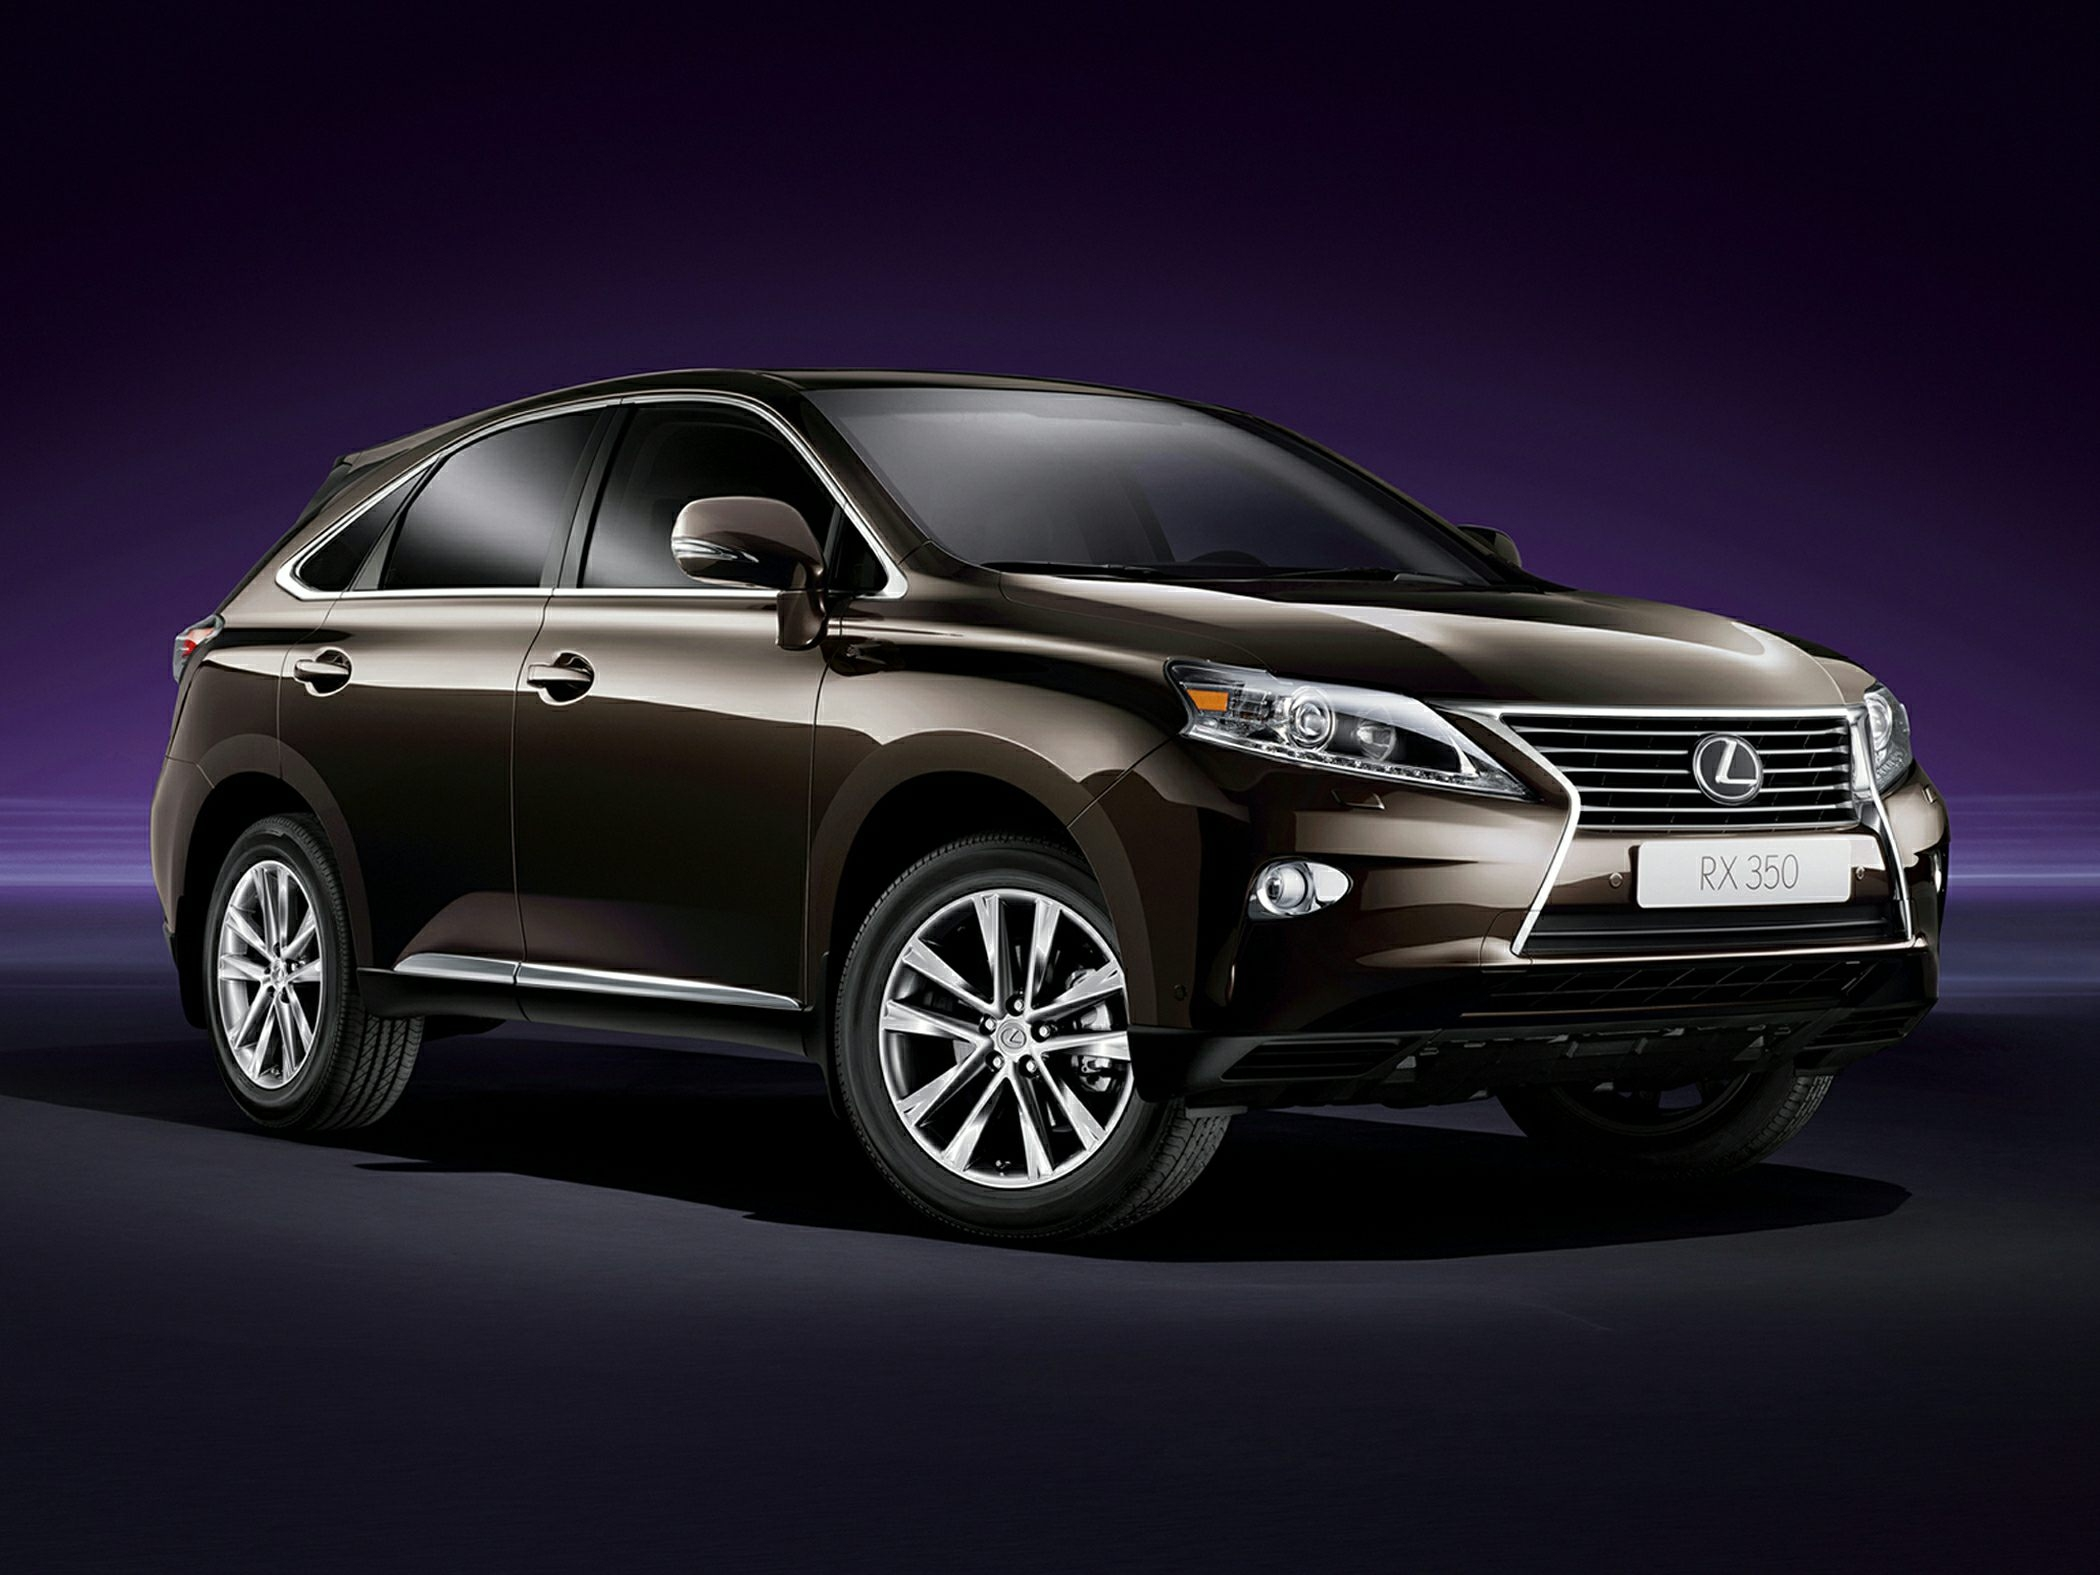 2015 lexus rx 350 invoice price invoice template ideas. Black Bedroom Furniture Sets. Home Design Ideas